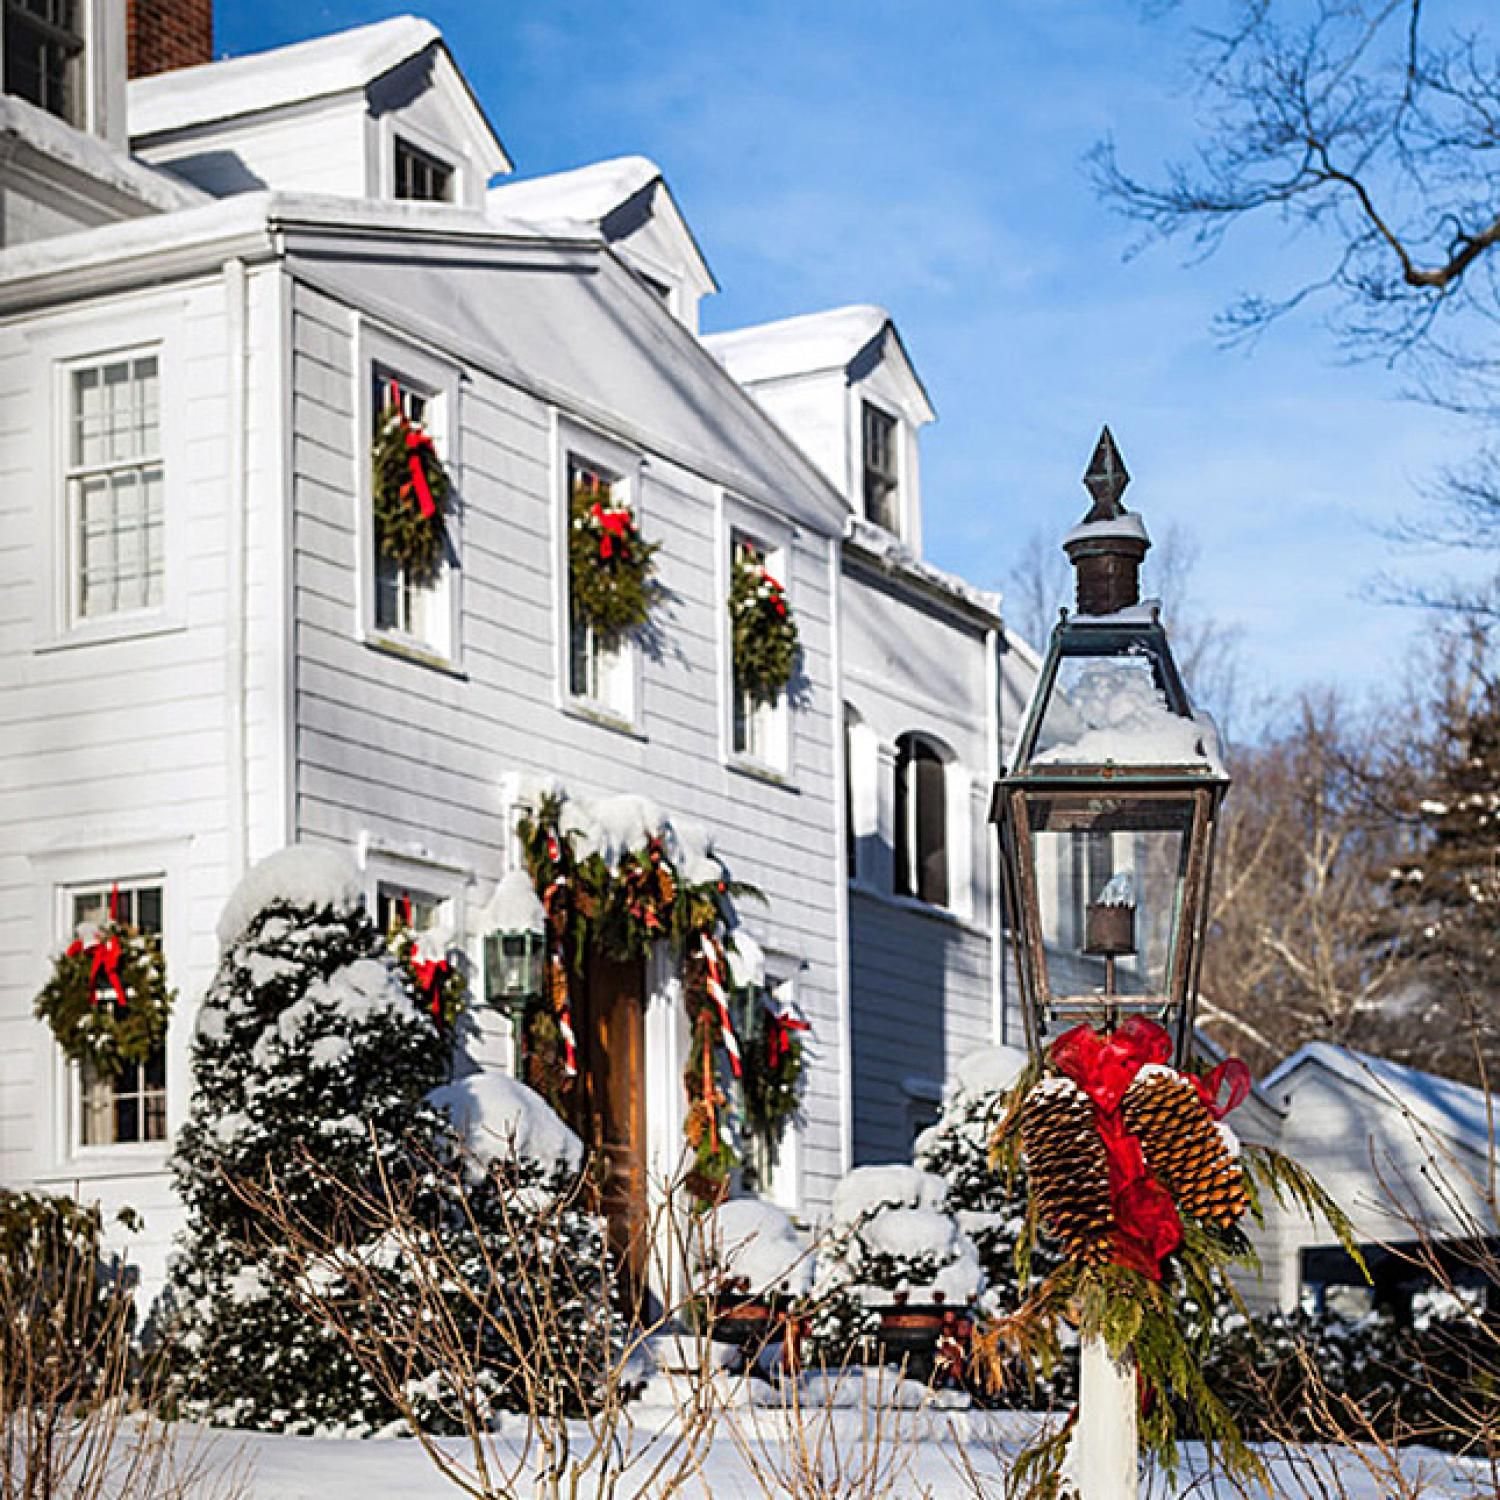 Christmas in a New England Clapboard Christmas in